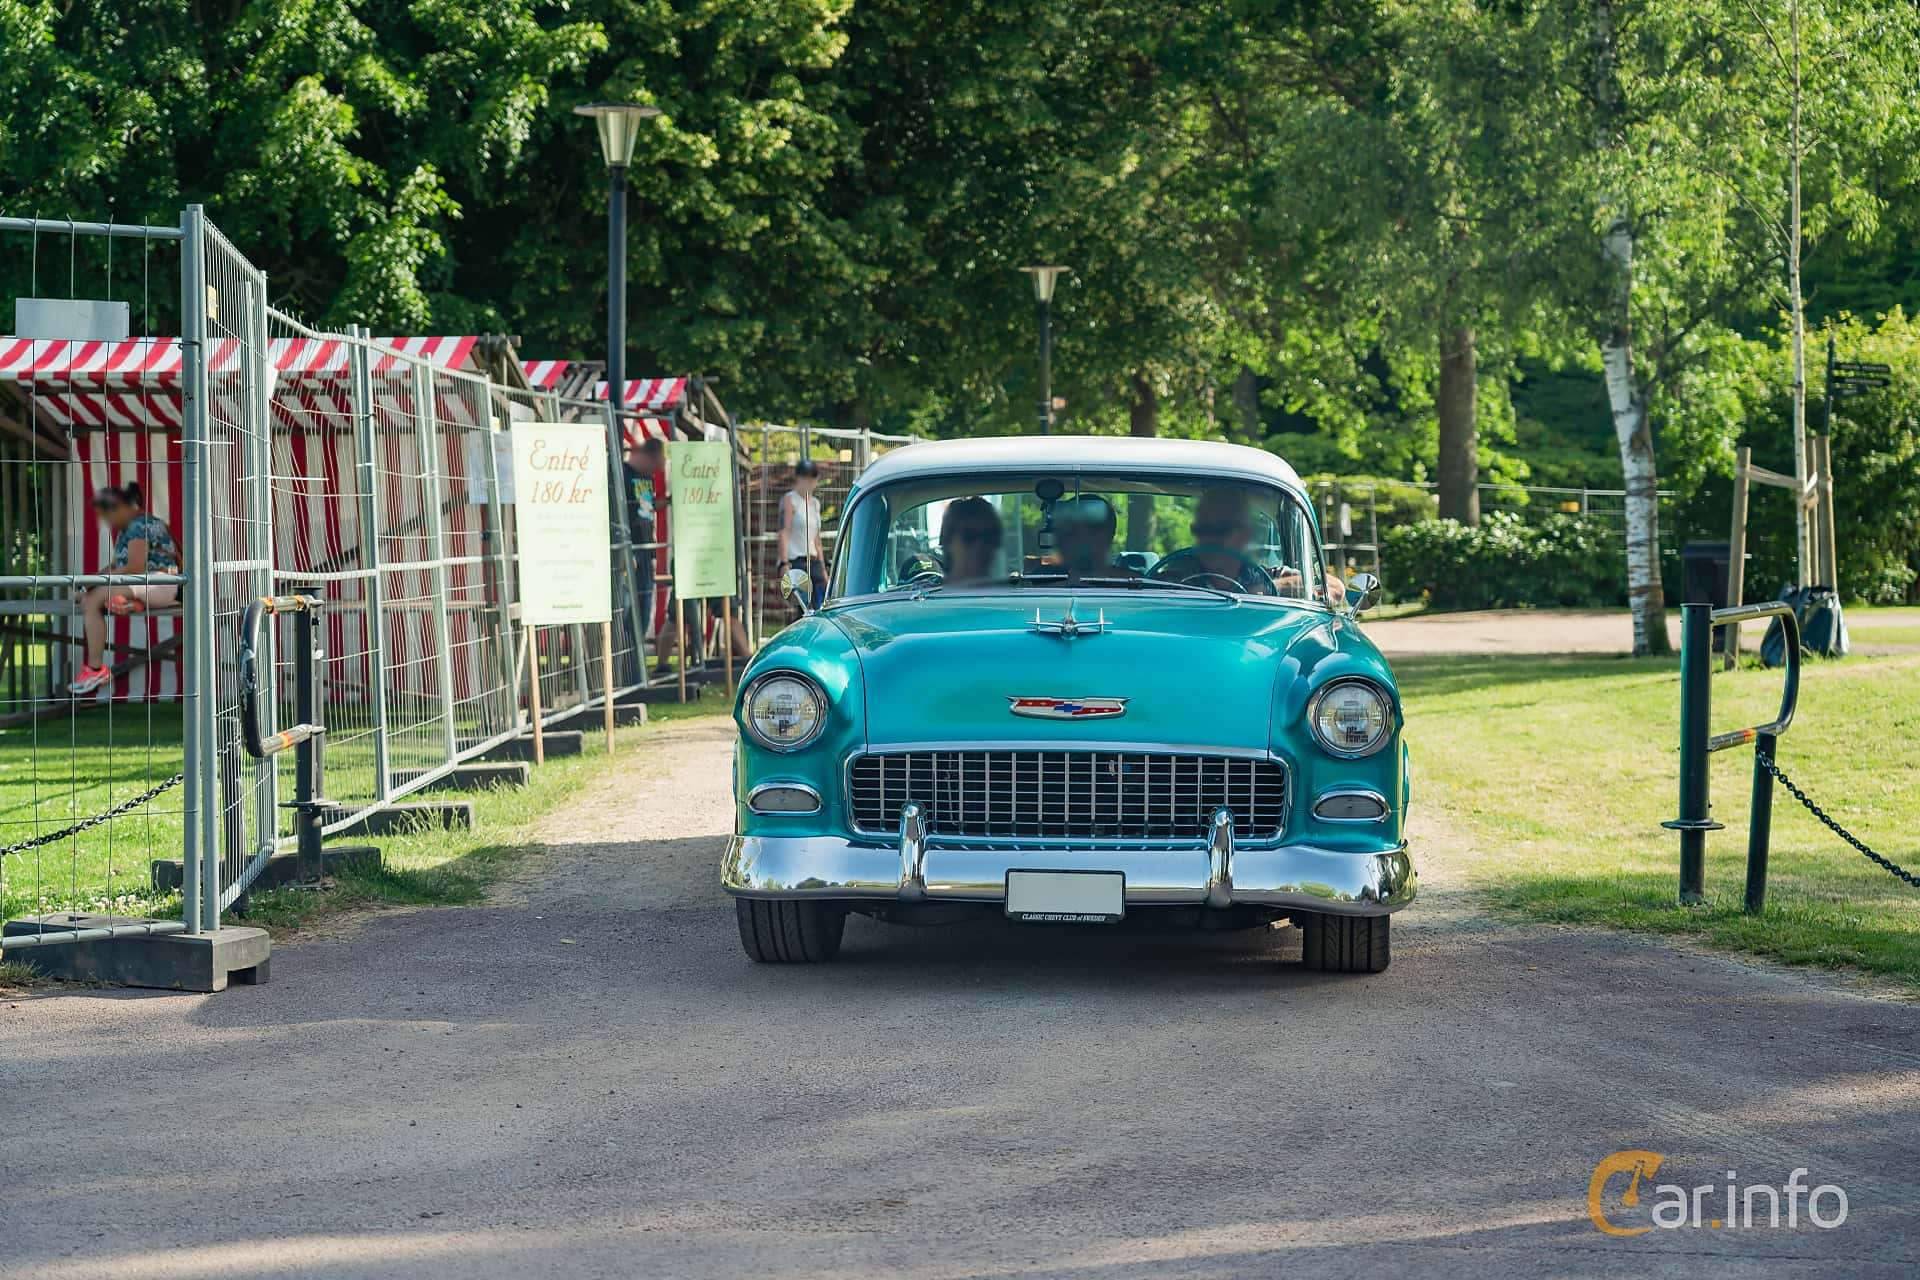 Chevrolet Two-Ten 4-dörrars Sedan 4.3 V8 Powerglide, 183hk, 1955 at Ronneby Nostalgia Festival 2019